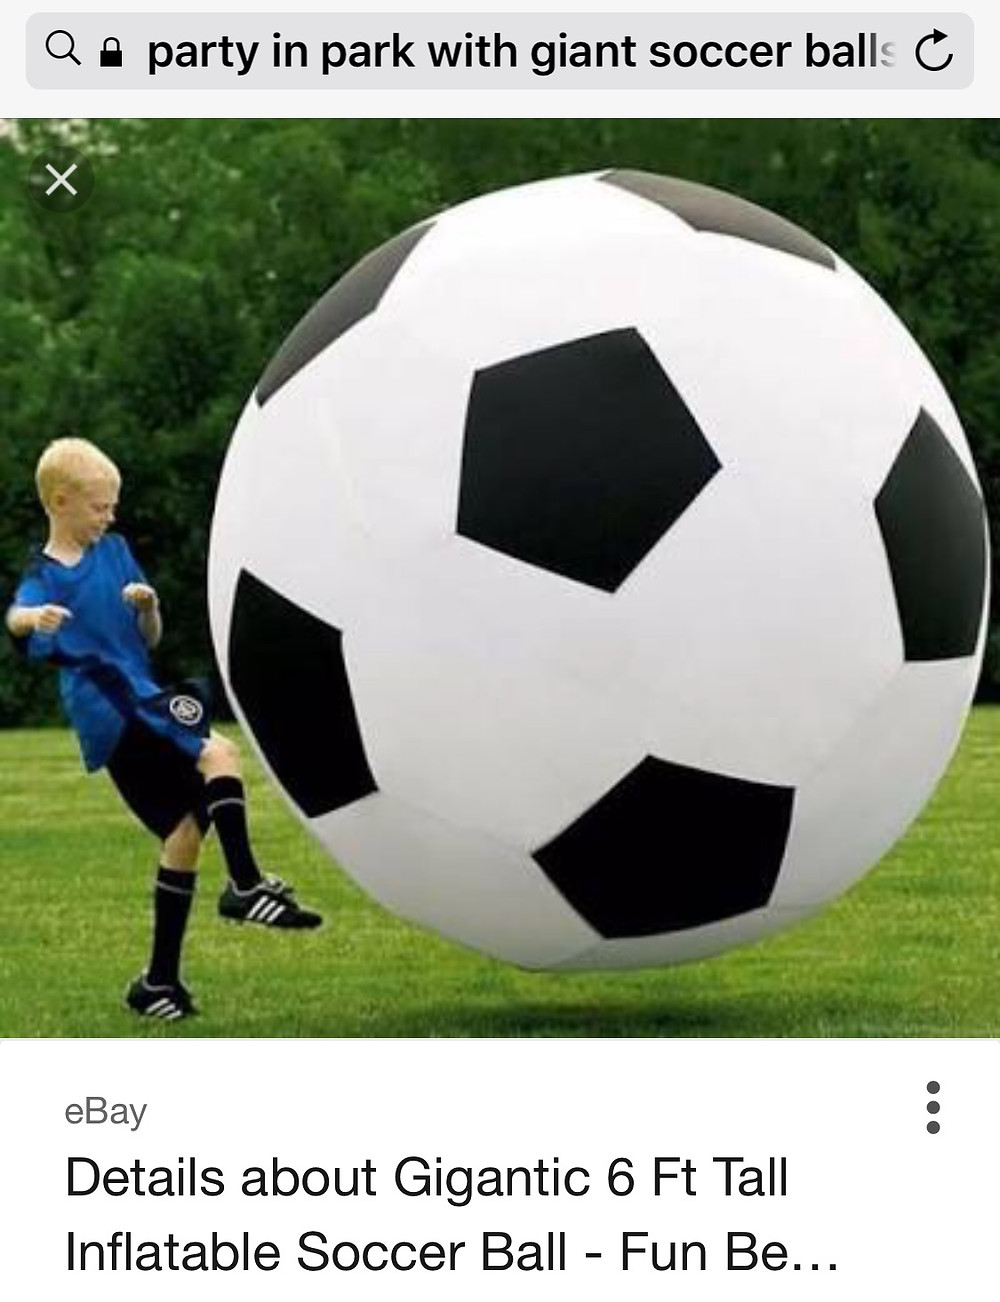 How much fun would this be kicking a Giant Soccer Ball around in the park - buy or hire from EBAY